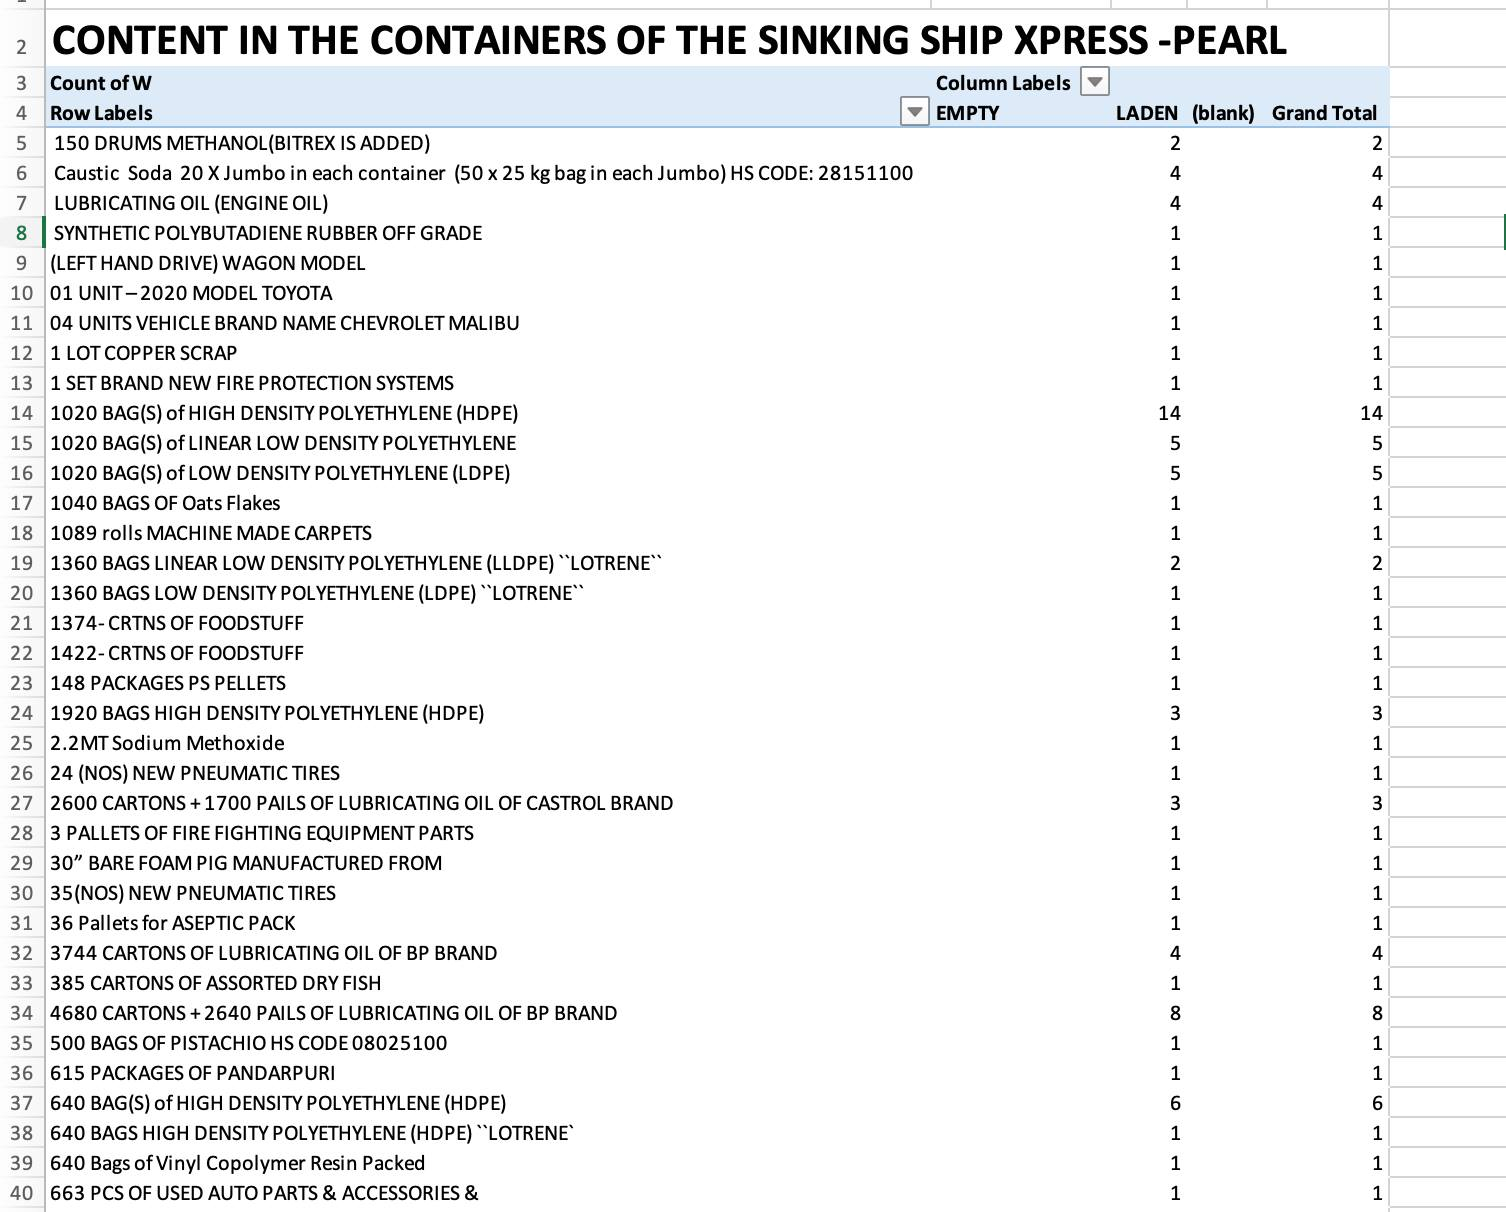 xpress perl ship container carrying